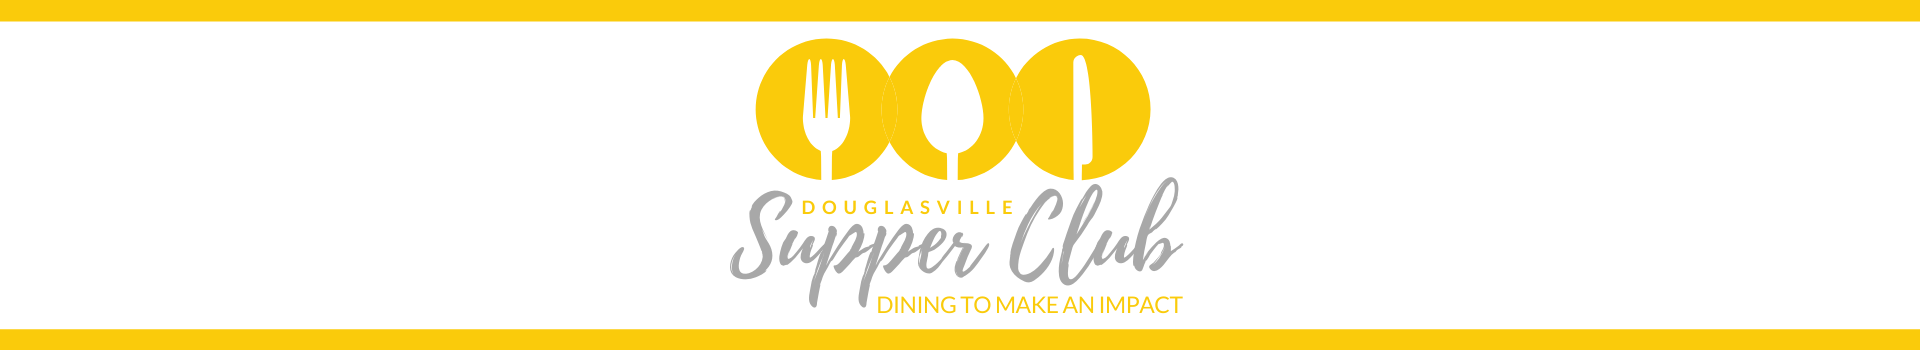 Supper Club Banner